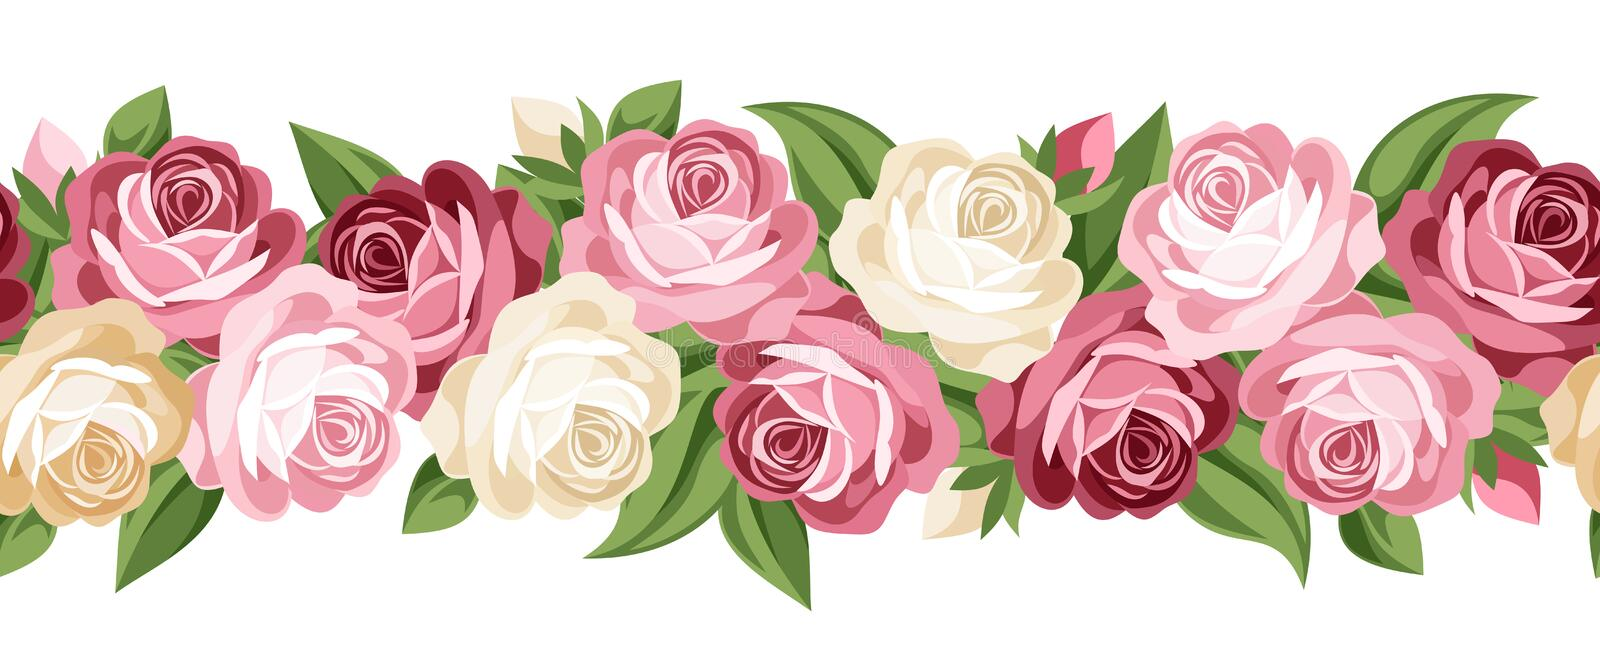 Horizontal Seamless Background With Roses. Stock Vector